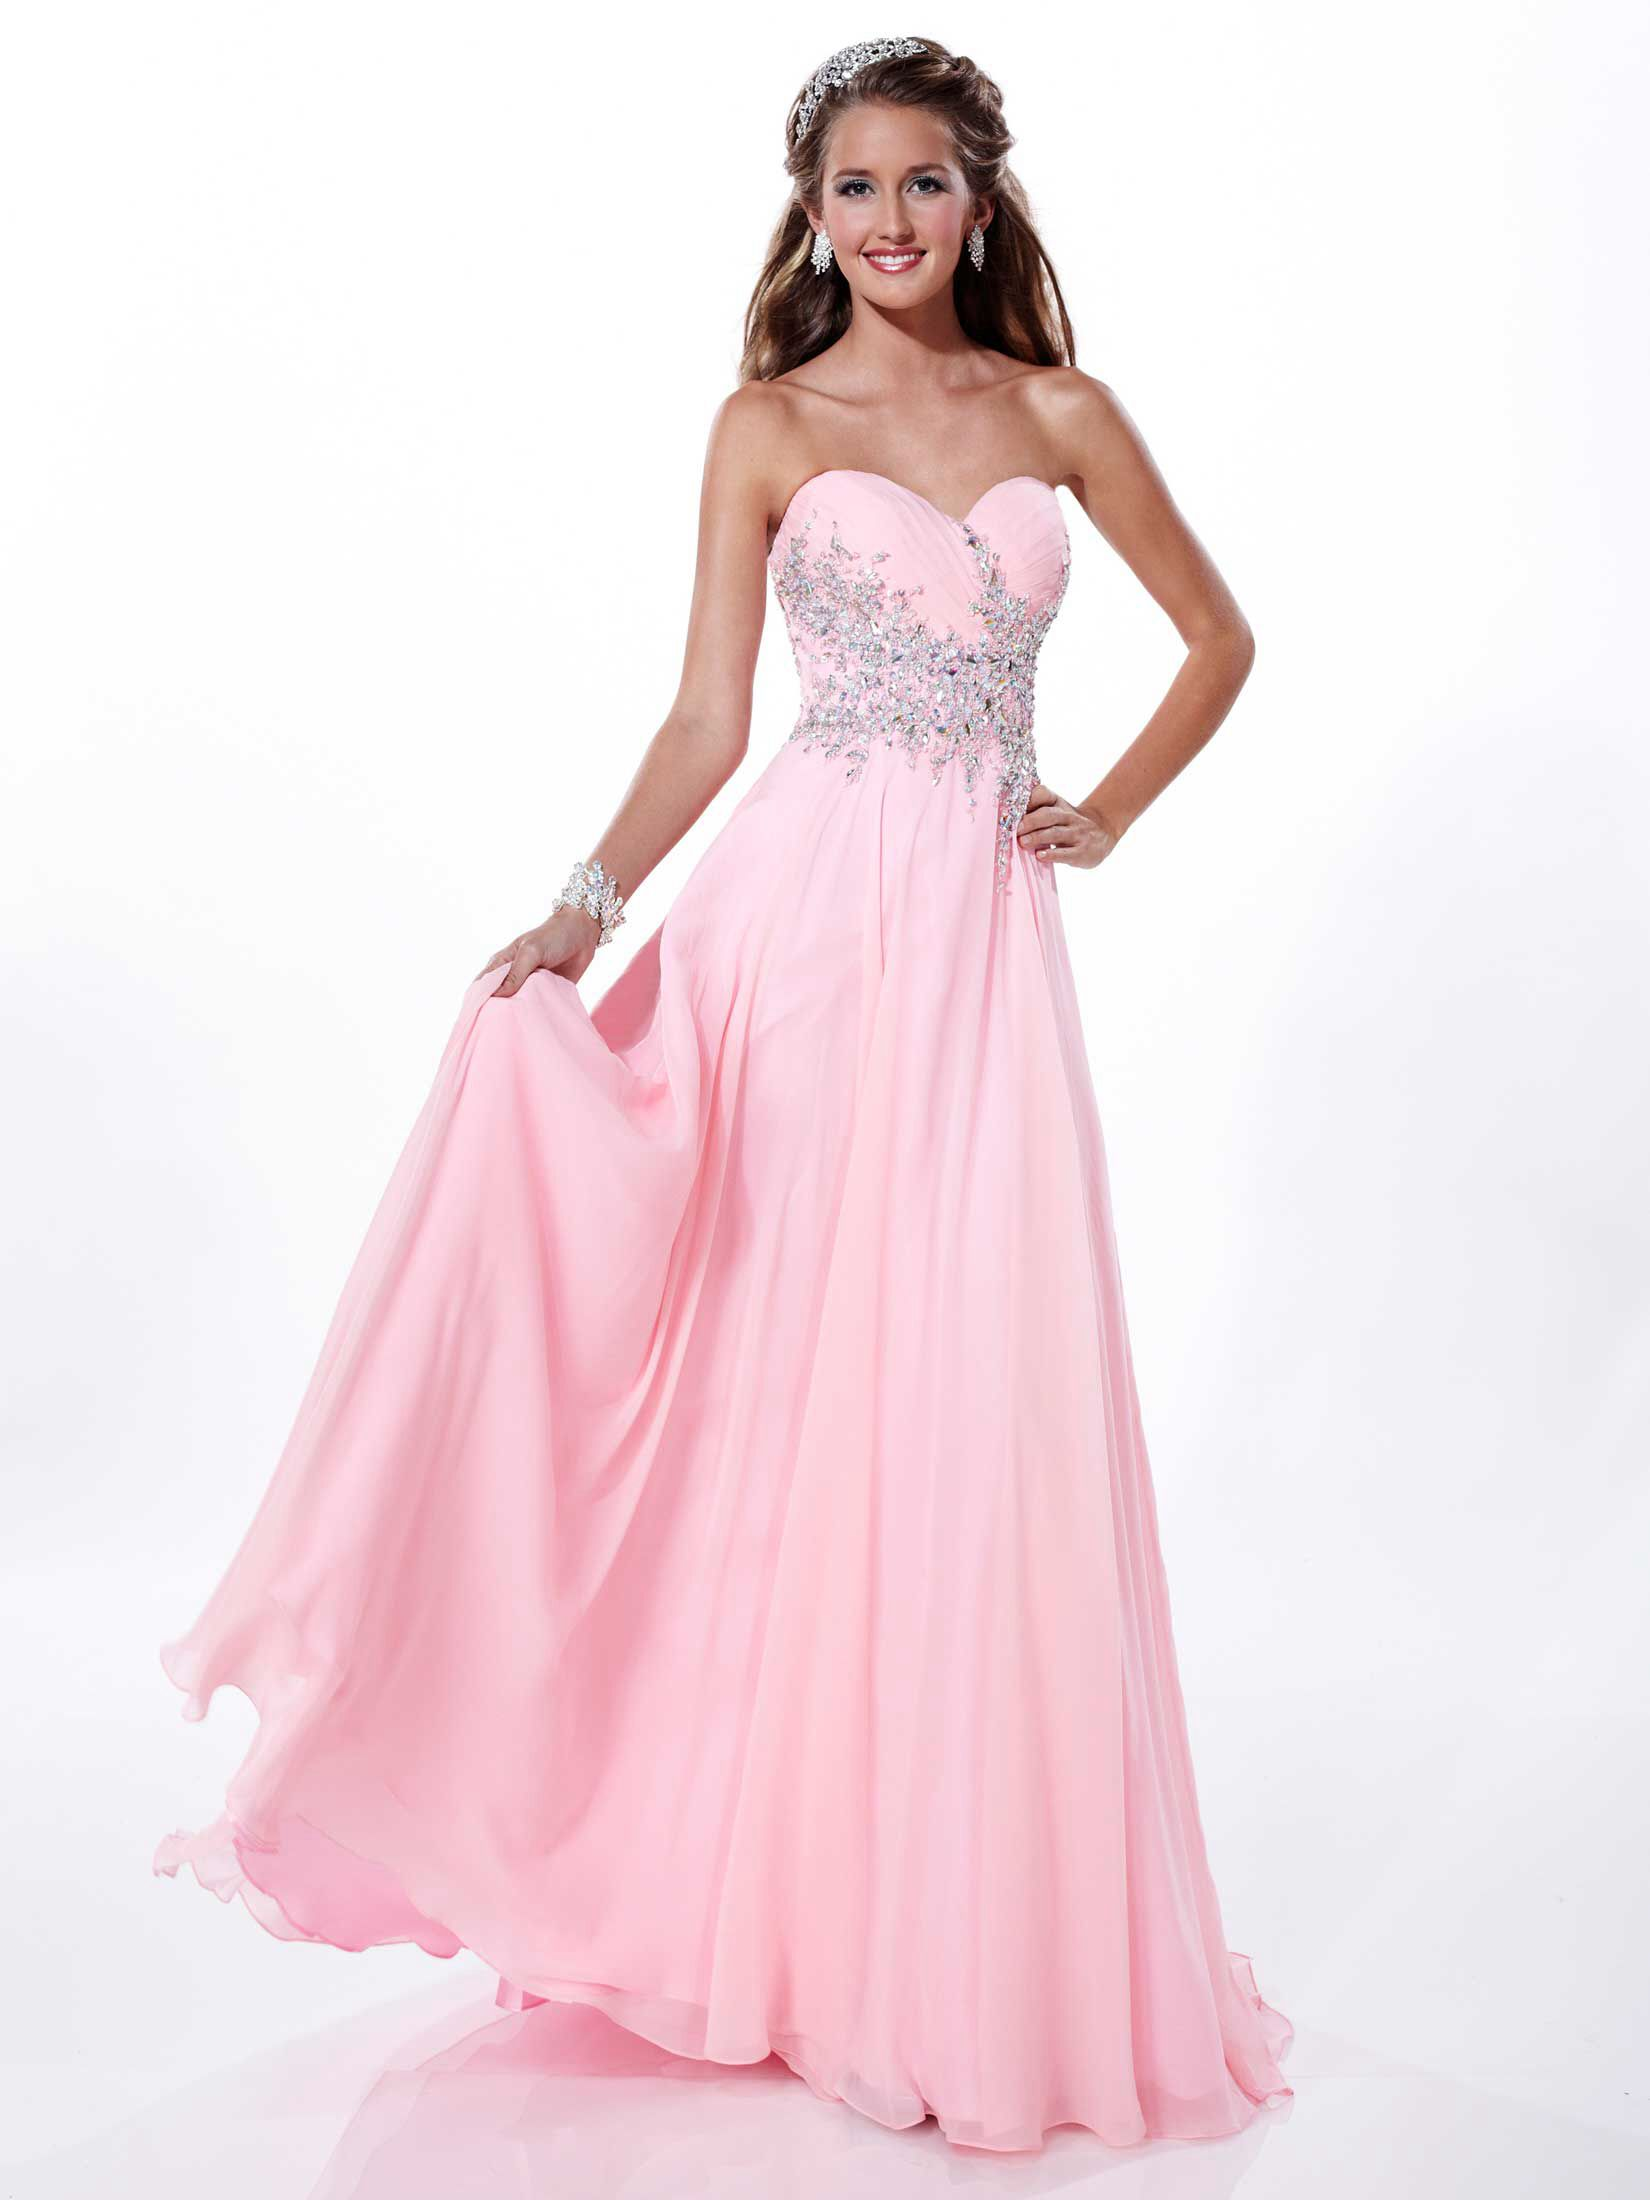 She fashions prom dresses 74